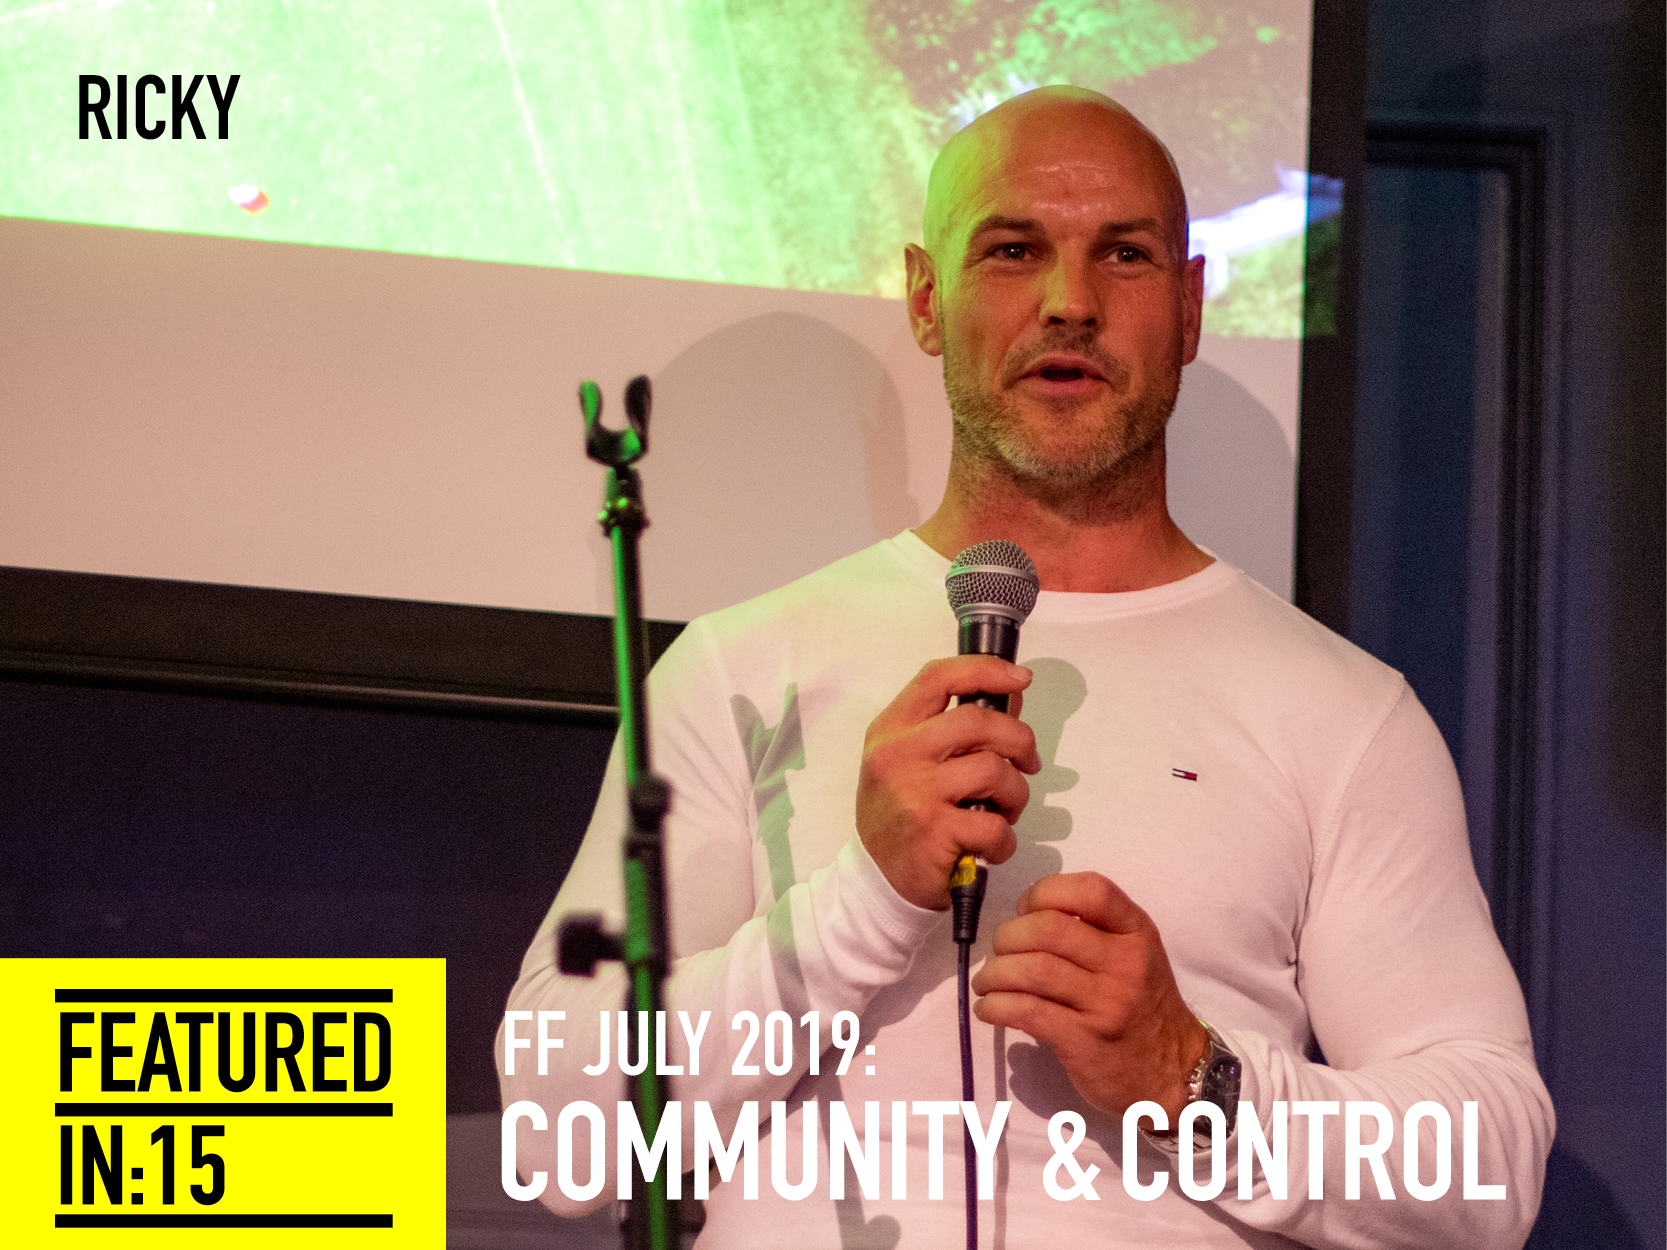 Ricky returns! Ricky first featured with us at our year anniversary in June 2017. We've become awesome FFriends since and we really wanted Ricky to come back and share his story of the last year. His feature with us in 2017 was based on the events following the tragedy at Grenfell. Ricky is a firefighter and was one of many there on the day of the disaster. The experience that day changed his life forever. In order to try and process the impact he experienced, he expressed his feelings through poetry - something he has turned to since he was very young. It's a form of expression that until recently he had concealed, his reasons being 'It's not a medium that is deemed very manly' and as society dictates his job as the optimum of masculinity you can see why he would have reservations to vocalise this. However he took the courage to share his poem with social media and as a result of it's reach, his poem was made into a short feature film called 'The fire fighter' (at this point in the evening there wasn't a dry eye in the house). Ricky went on to share with us his battle with PTSD and depression, how it presented a version of himself that he wasn't totally comfortable with and his quest to be a better person (physically and mentally) and improve his relationship with the world that he see's was vital to his fight for survival away from substances and alcohol misuse that he had also fallen into. He knew poetry was his clean salvation so he started to use it as a positive method to face other deep rooted fears he hadn't ever really challenged. Ricky shared three of his extremely moving poems with us, the third being called 'The key', an open and heart wrenching poem about his abusive step father. Ricky took us on a journey through out of control and the darkness that surrounded him to back in control to the light that now shines through him.